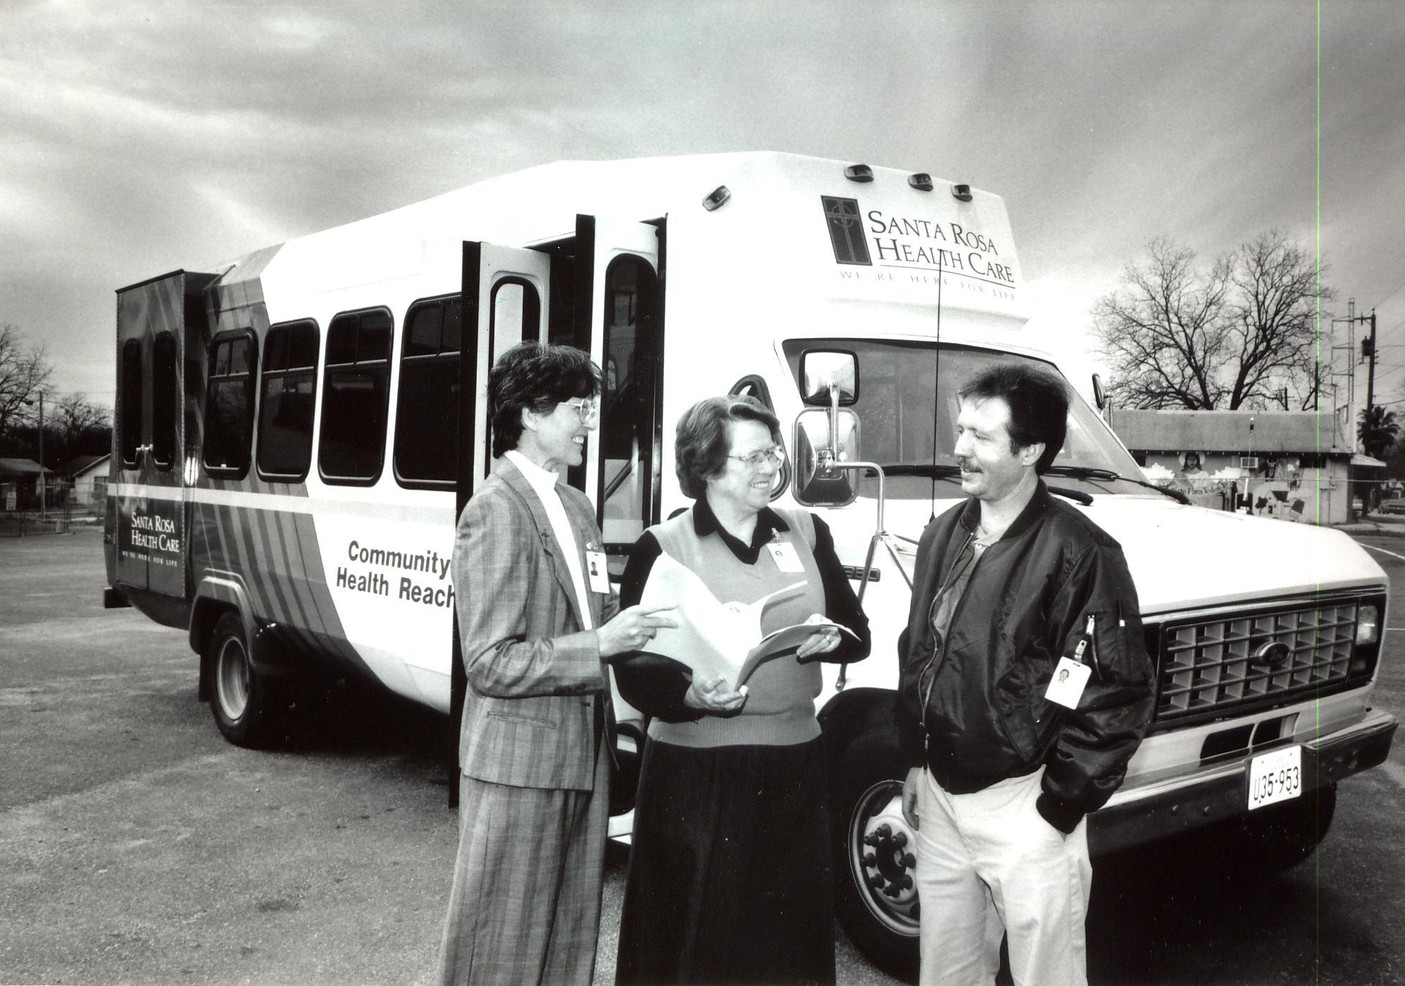 In 1993, Sisters Juanita Albracht and Lauren Moynahan (pictured) started Community Healthwatch Program to provide basic care for medically underserved areas of the west side of San Antonio.